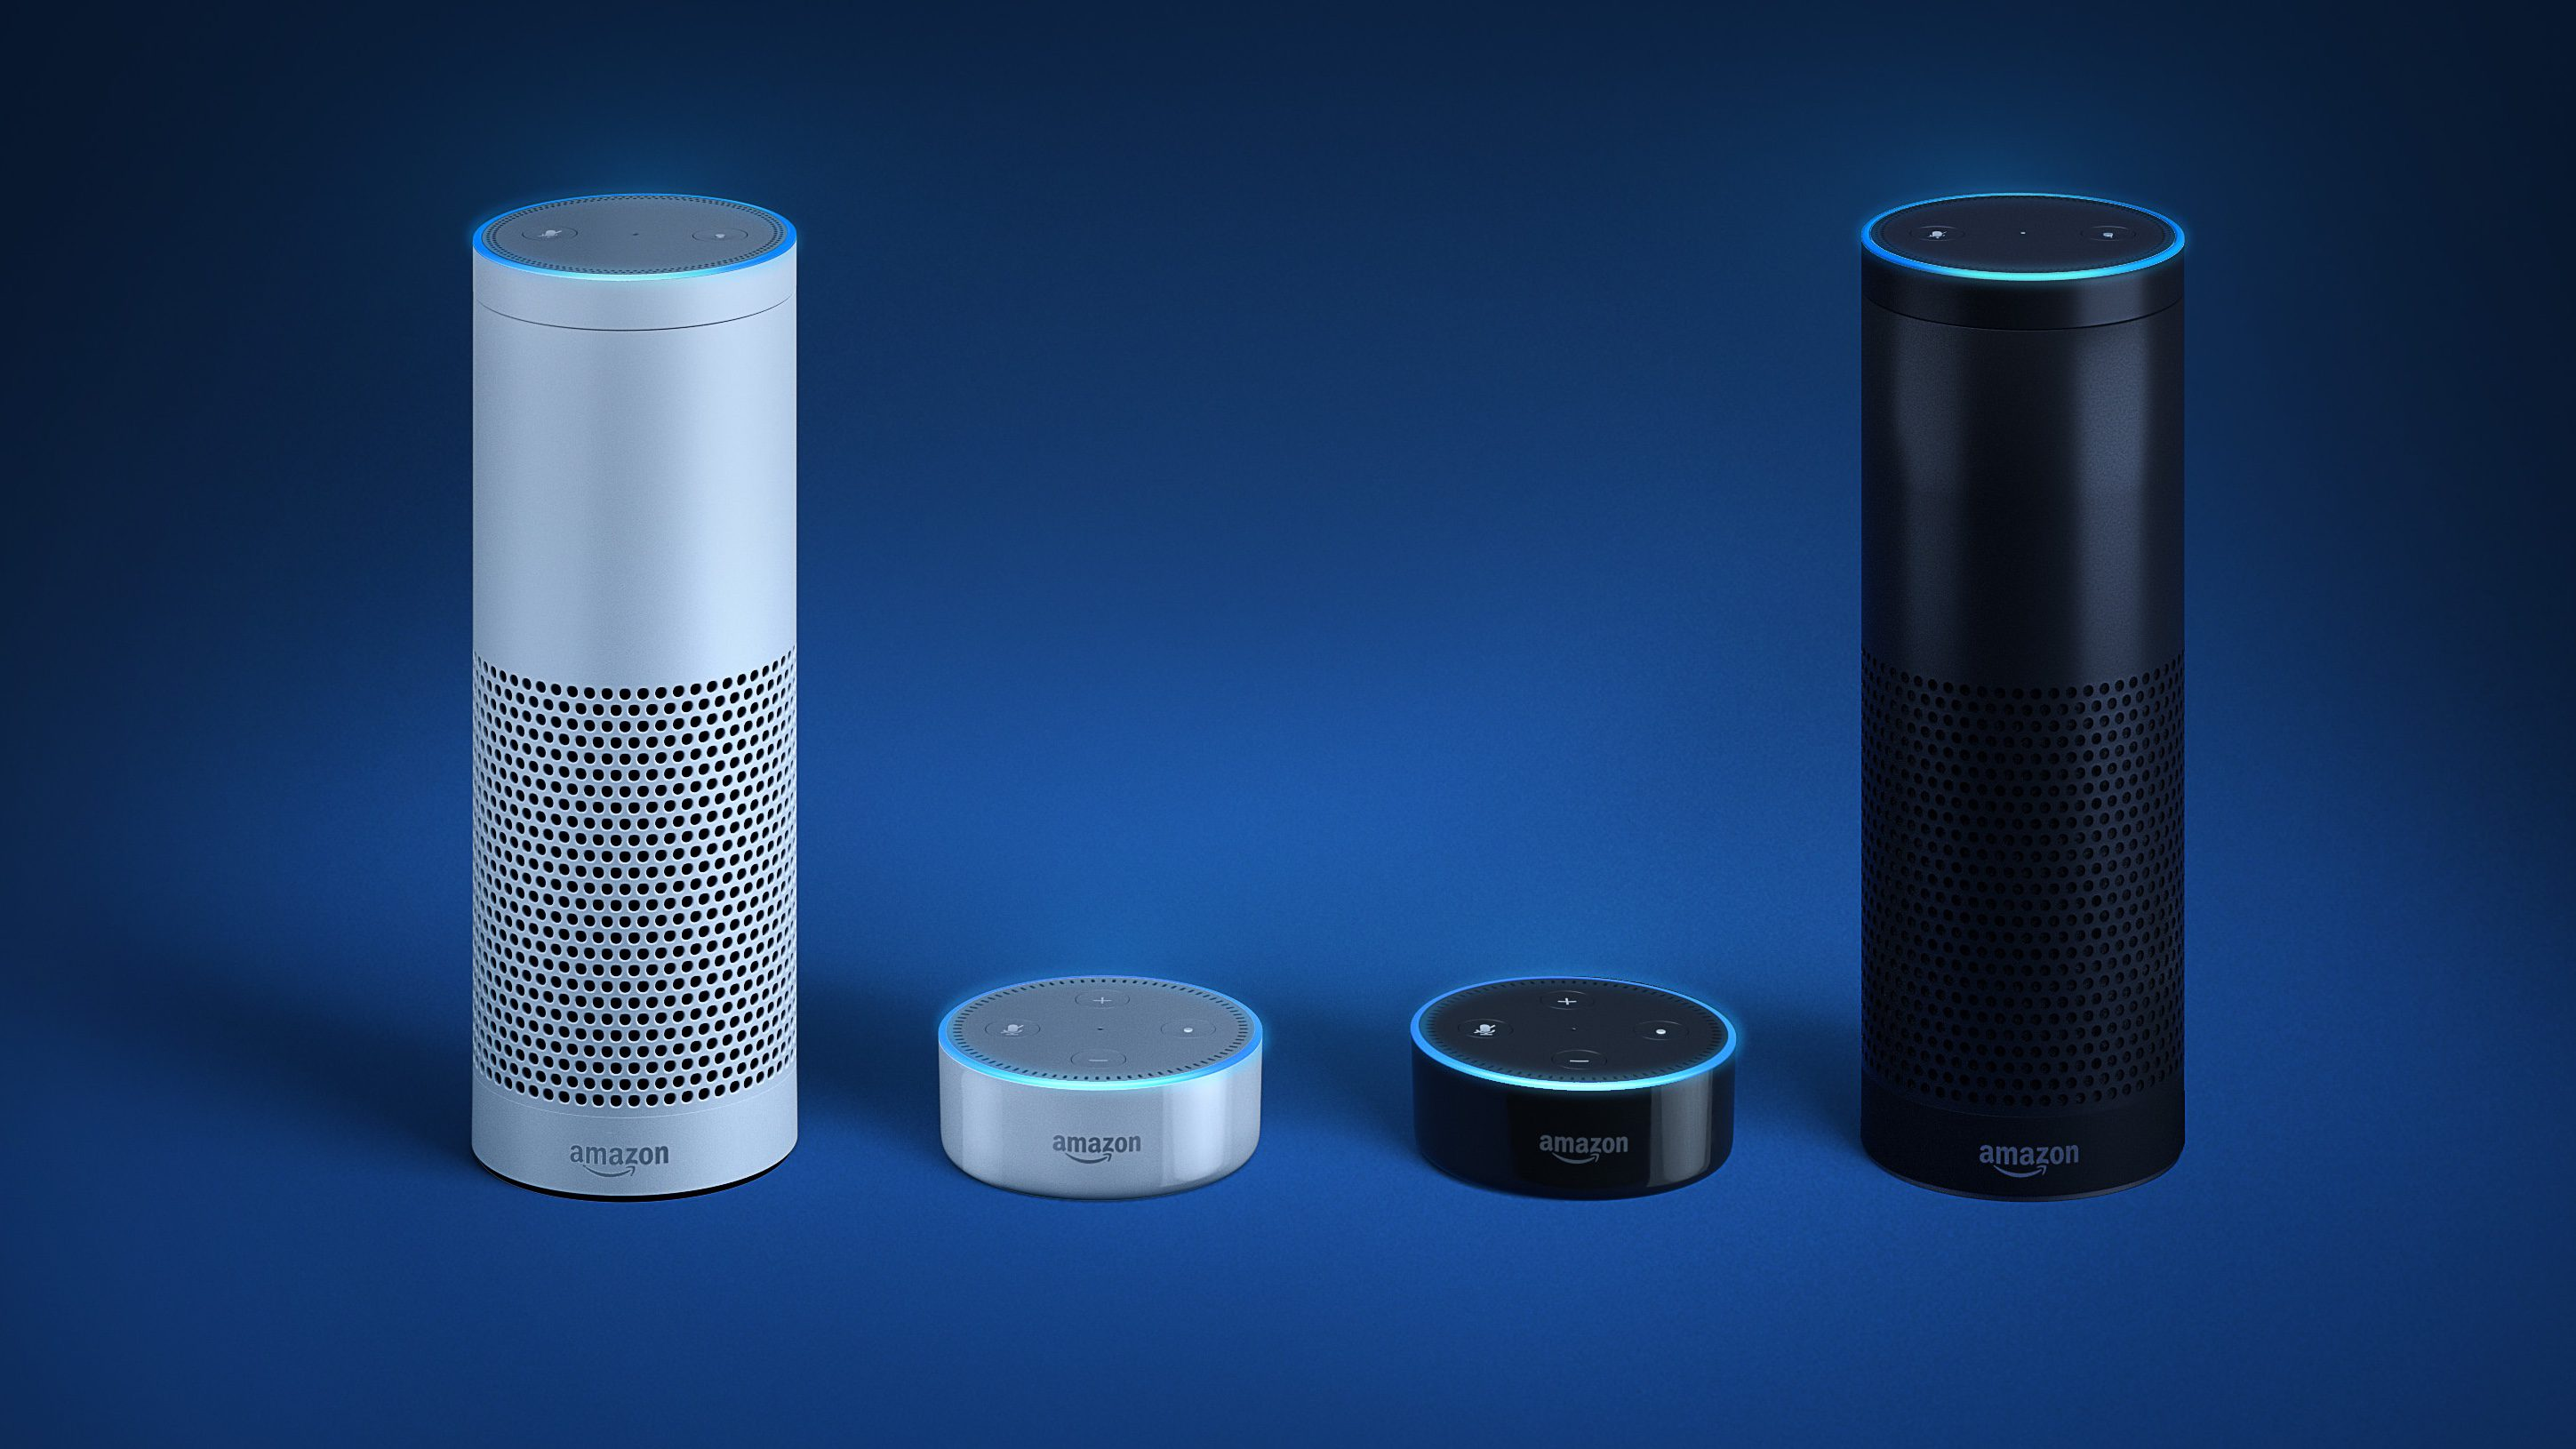 amazon-echo-and-dot-alexa-smart